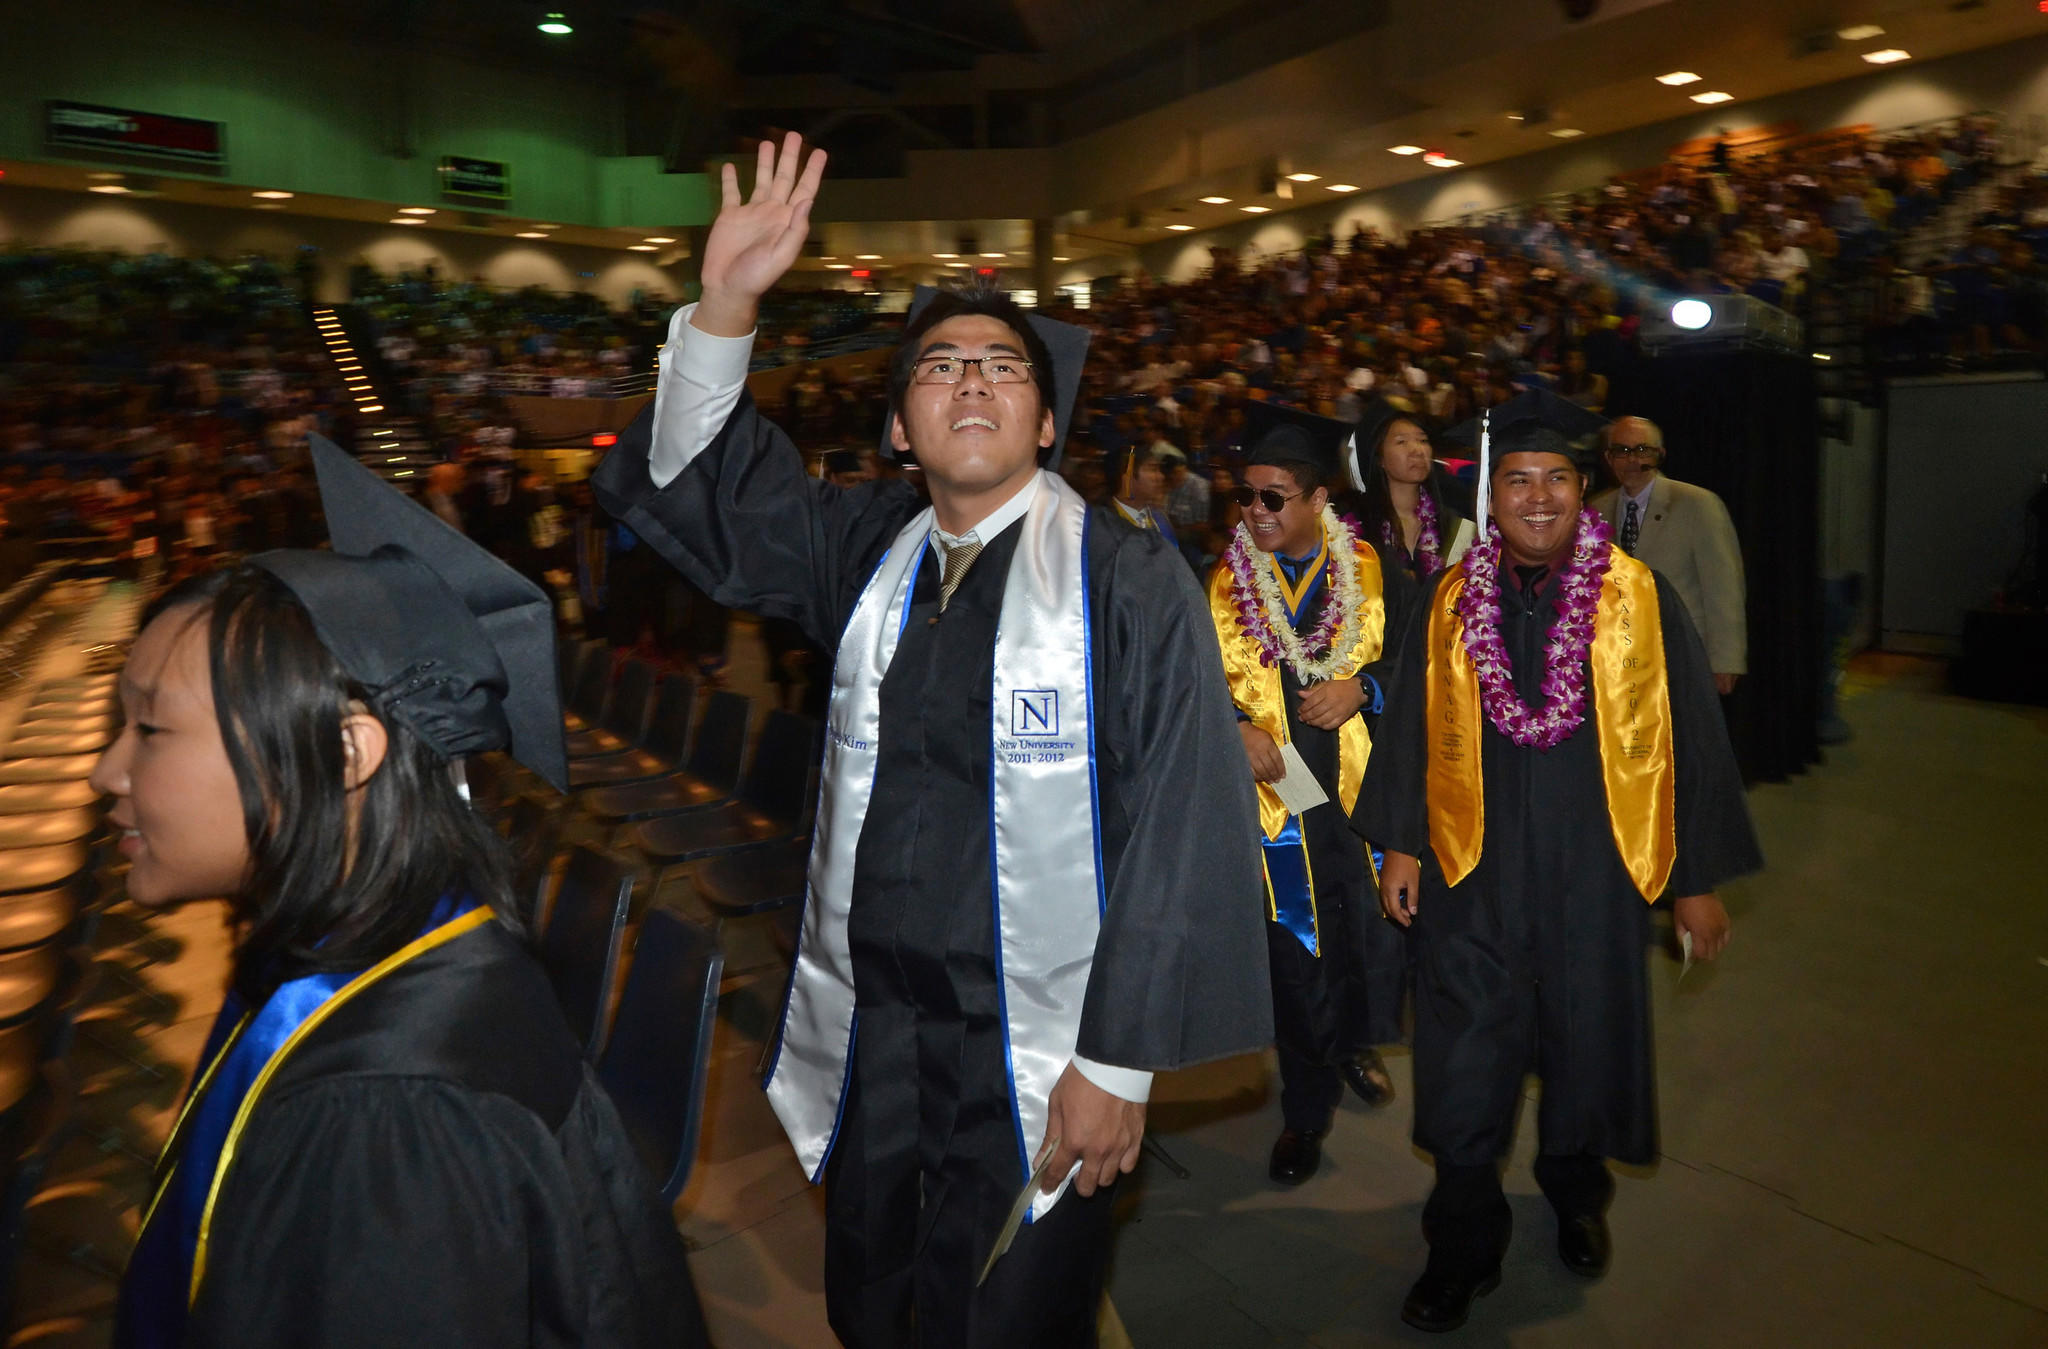 Students enter the Bren Events Center as a commencement ceremony for UC Irvine's School of Humanities gets underway in 2012.